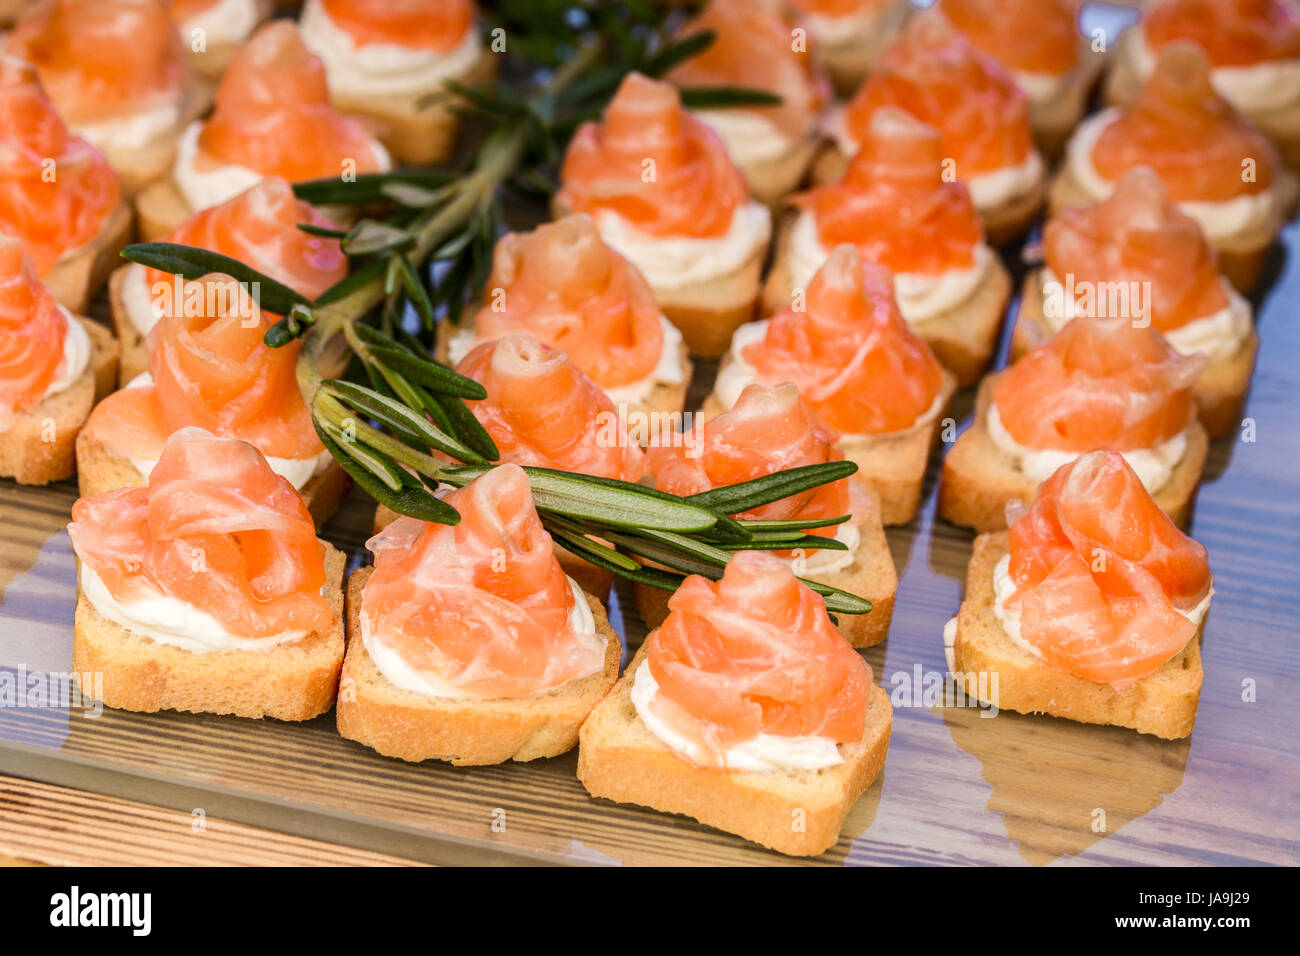 mini canapes with smoked salmon and rosemary sprig . - Stock Image